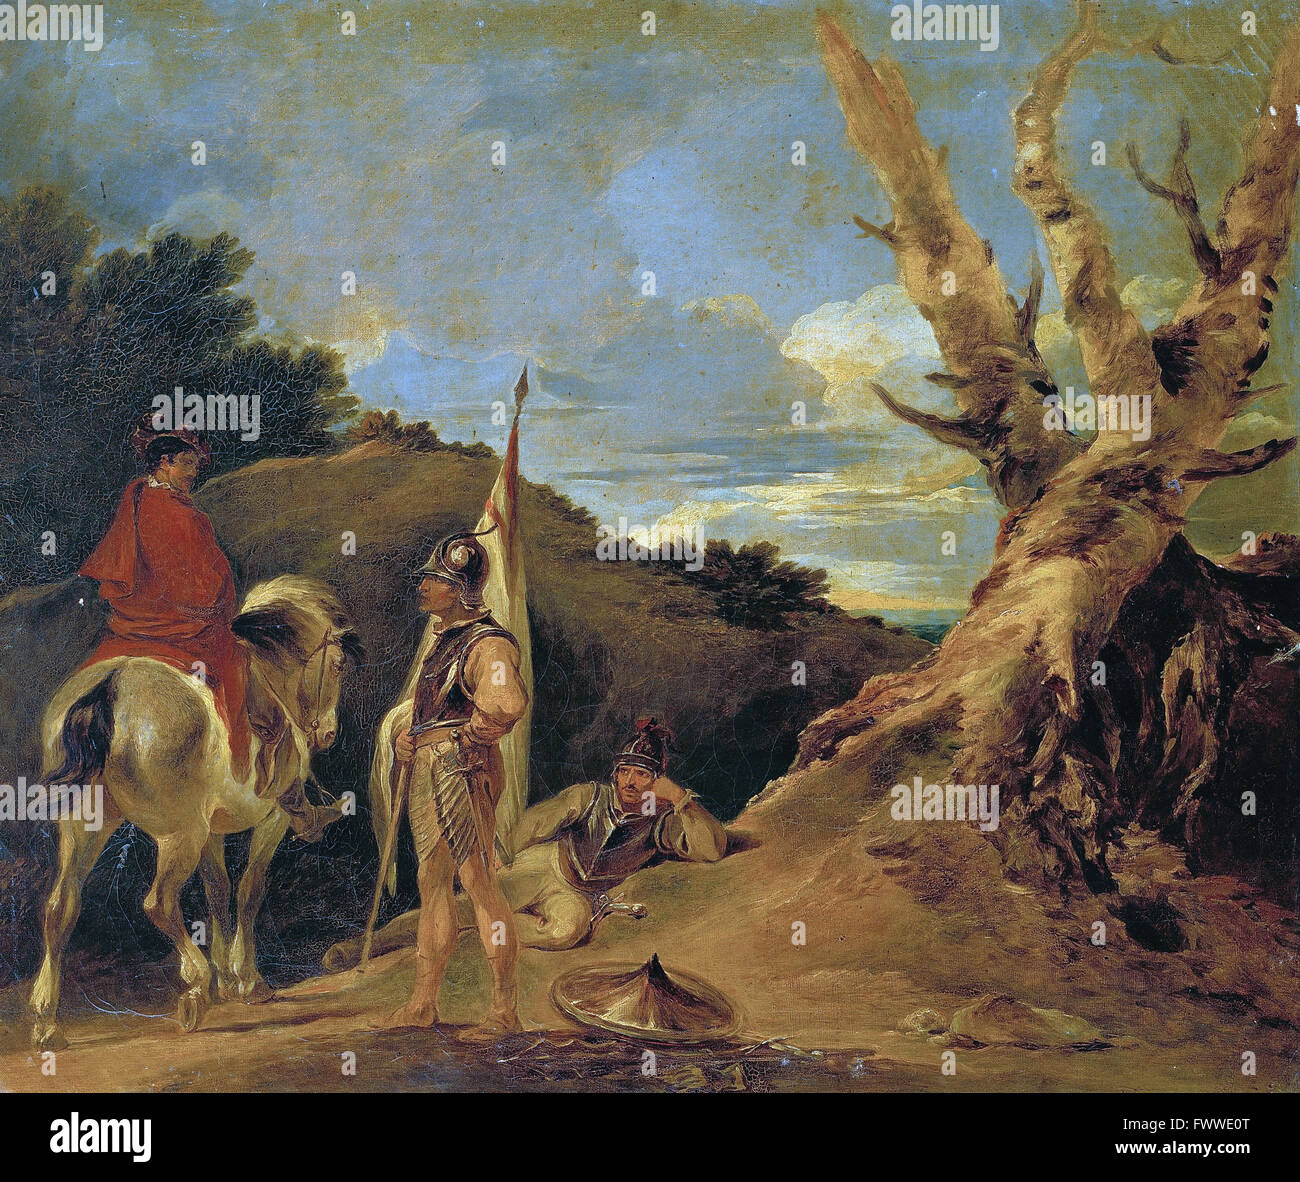 Bourgeois, Sir Peter Francis - Landscape with Soldiers - Stock Image